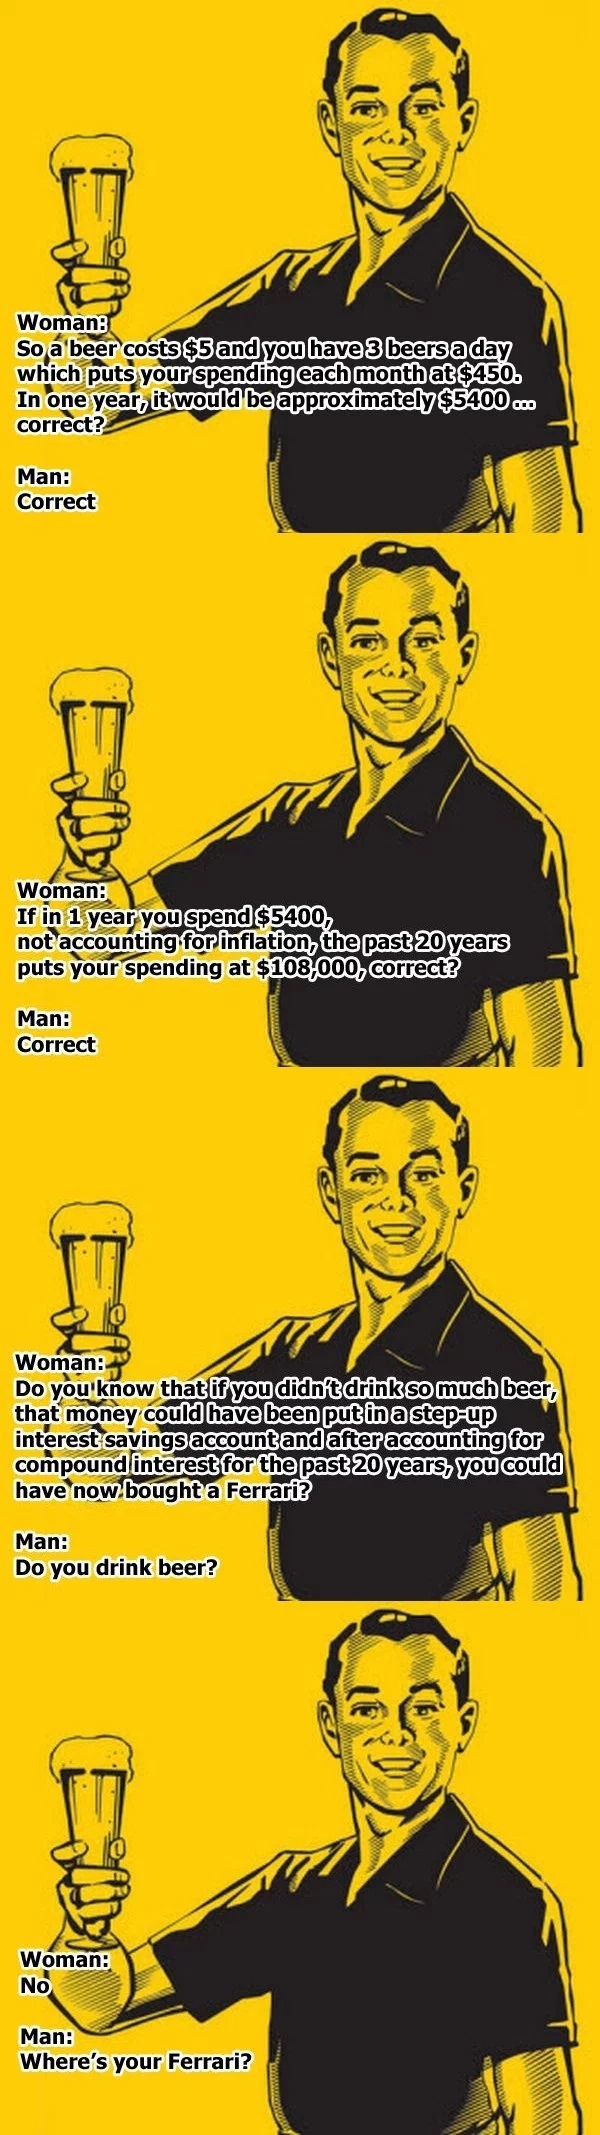 Men's Logic Funny Picture